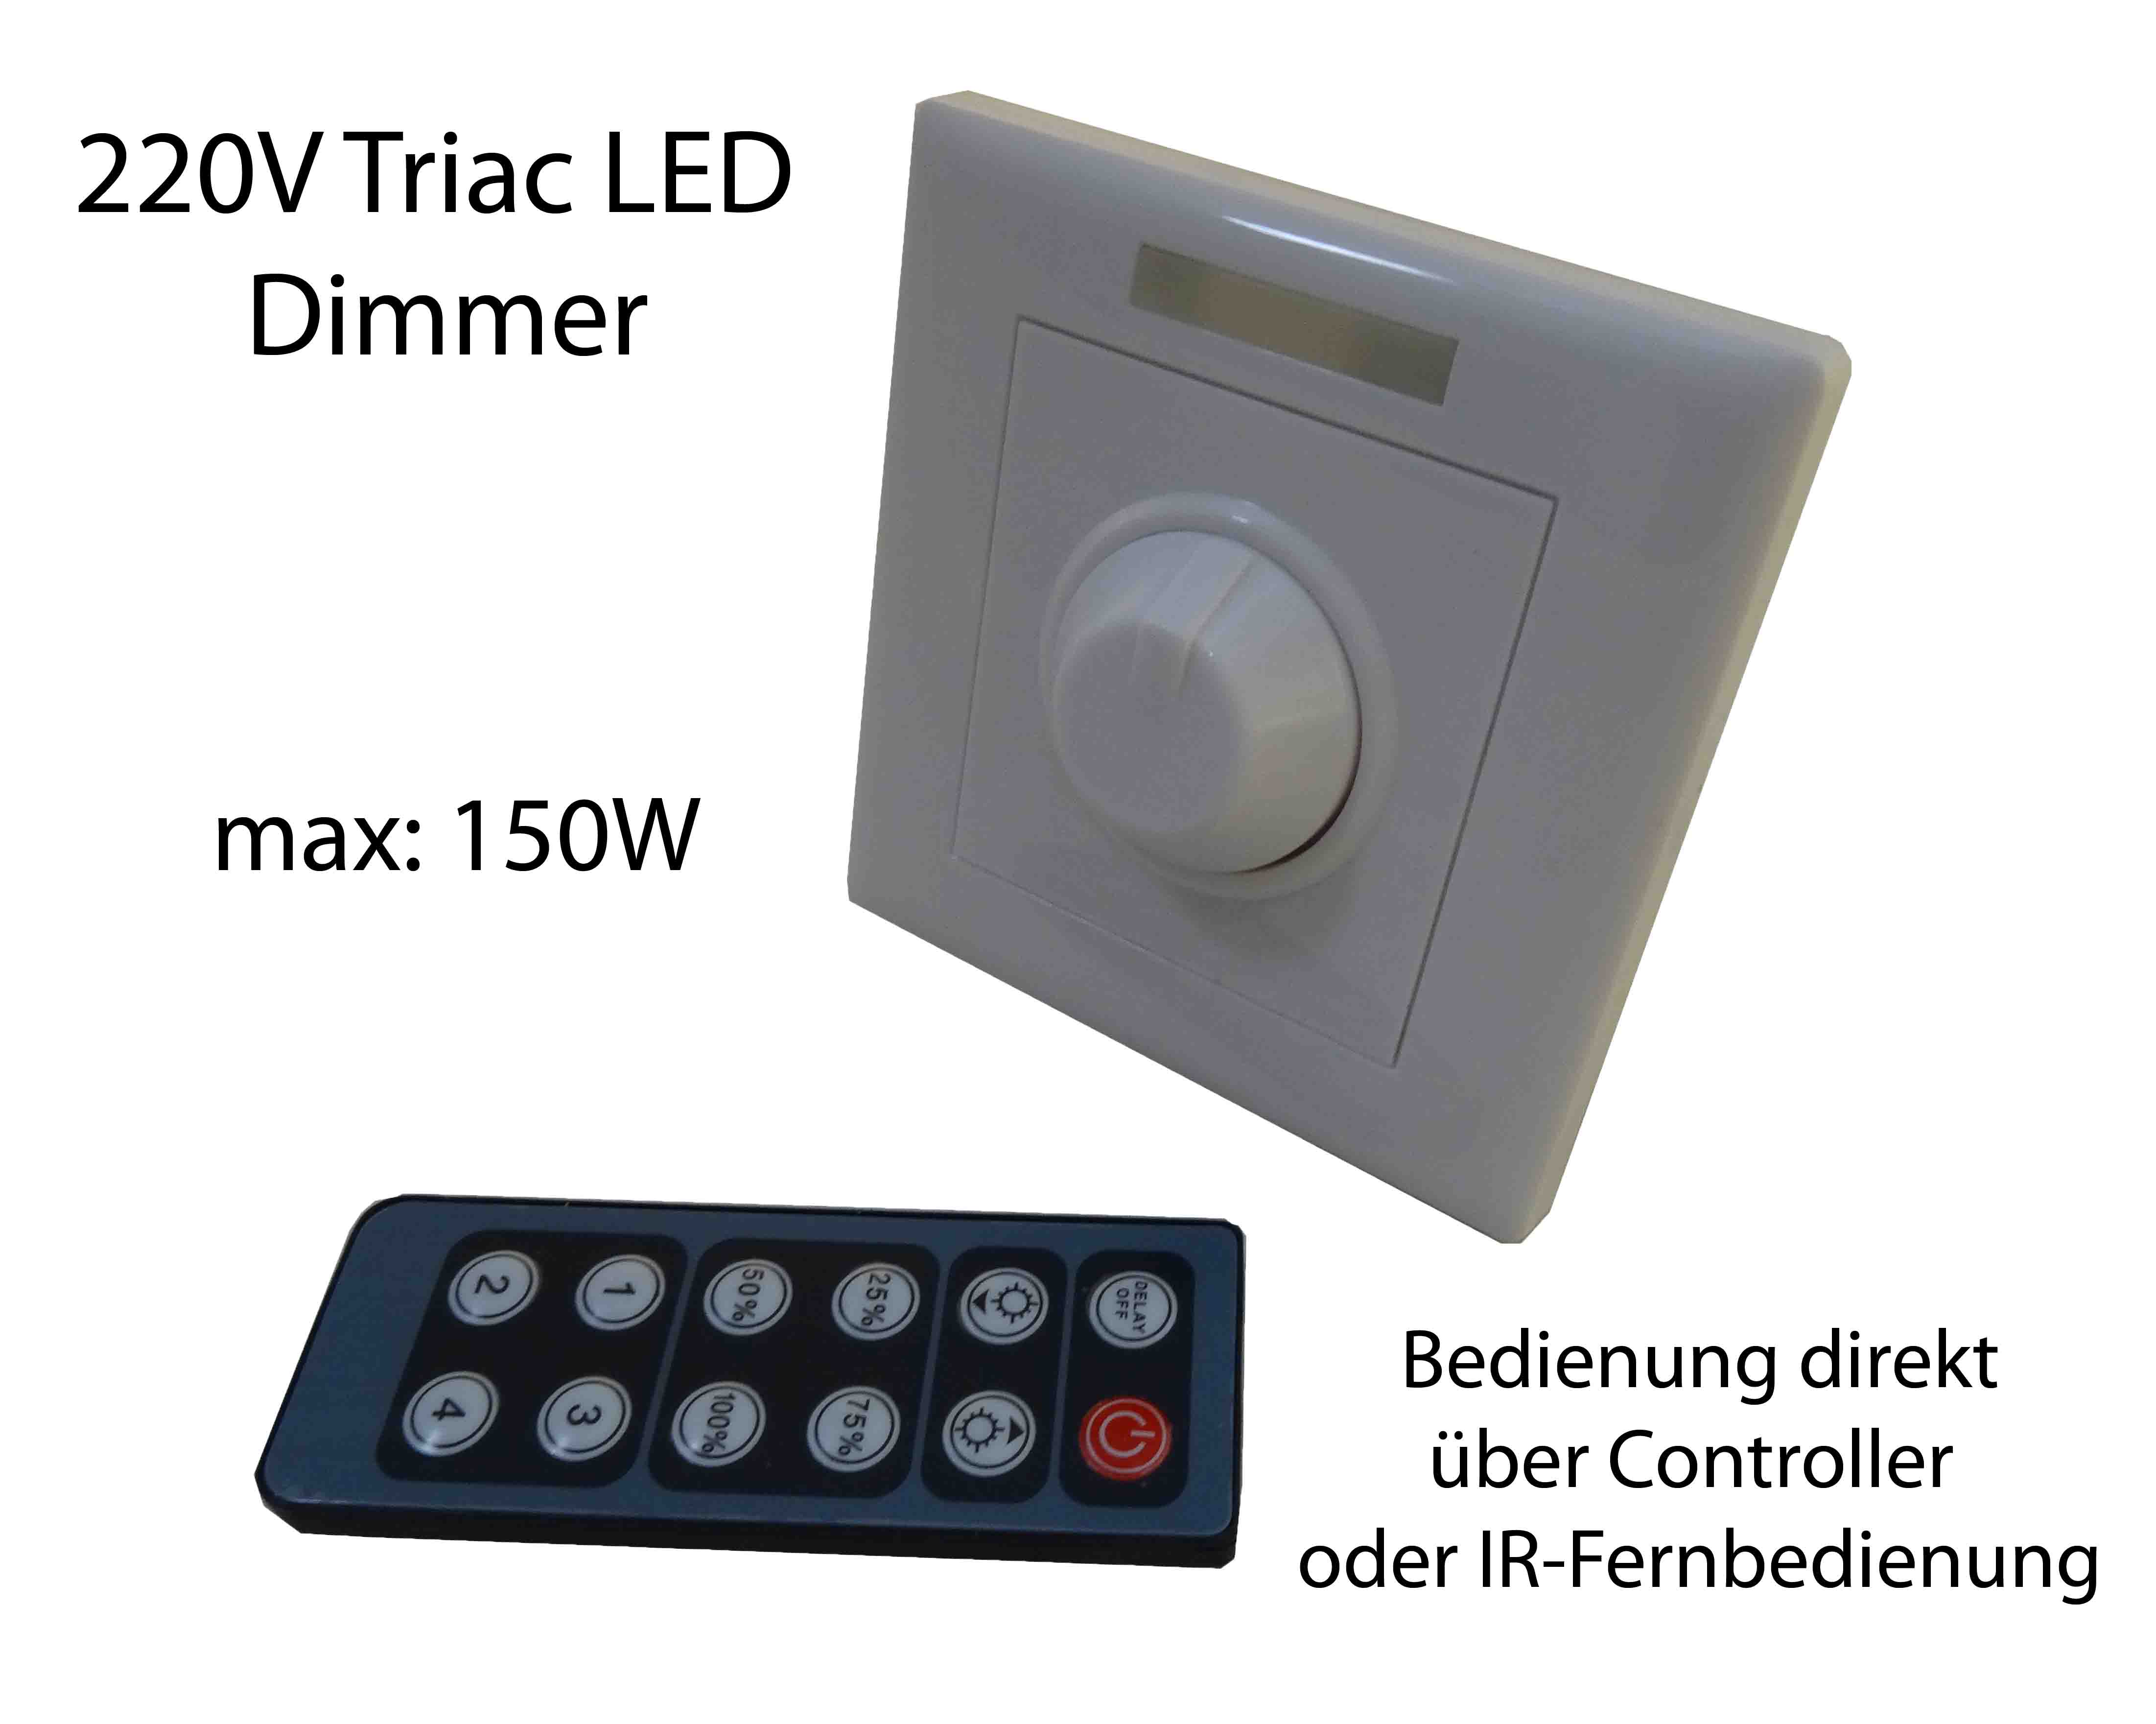 230v led triac leuchtmittel dimmer einbau schalter controller fernbedienung ebay. Black Bedroom Furniture Sets. Home Design Ideas